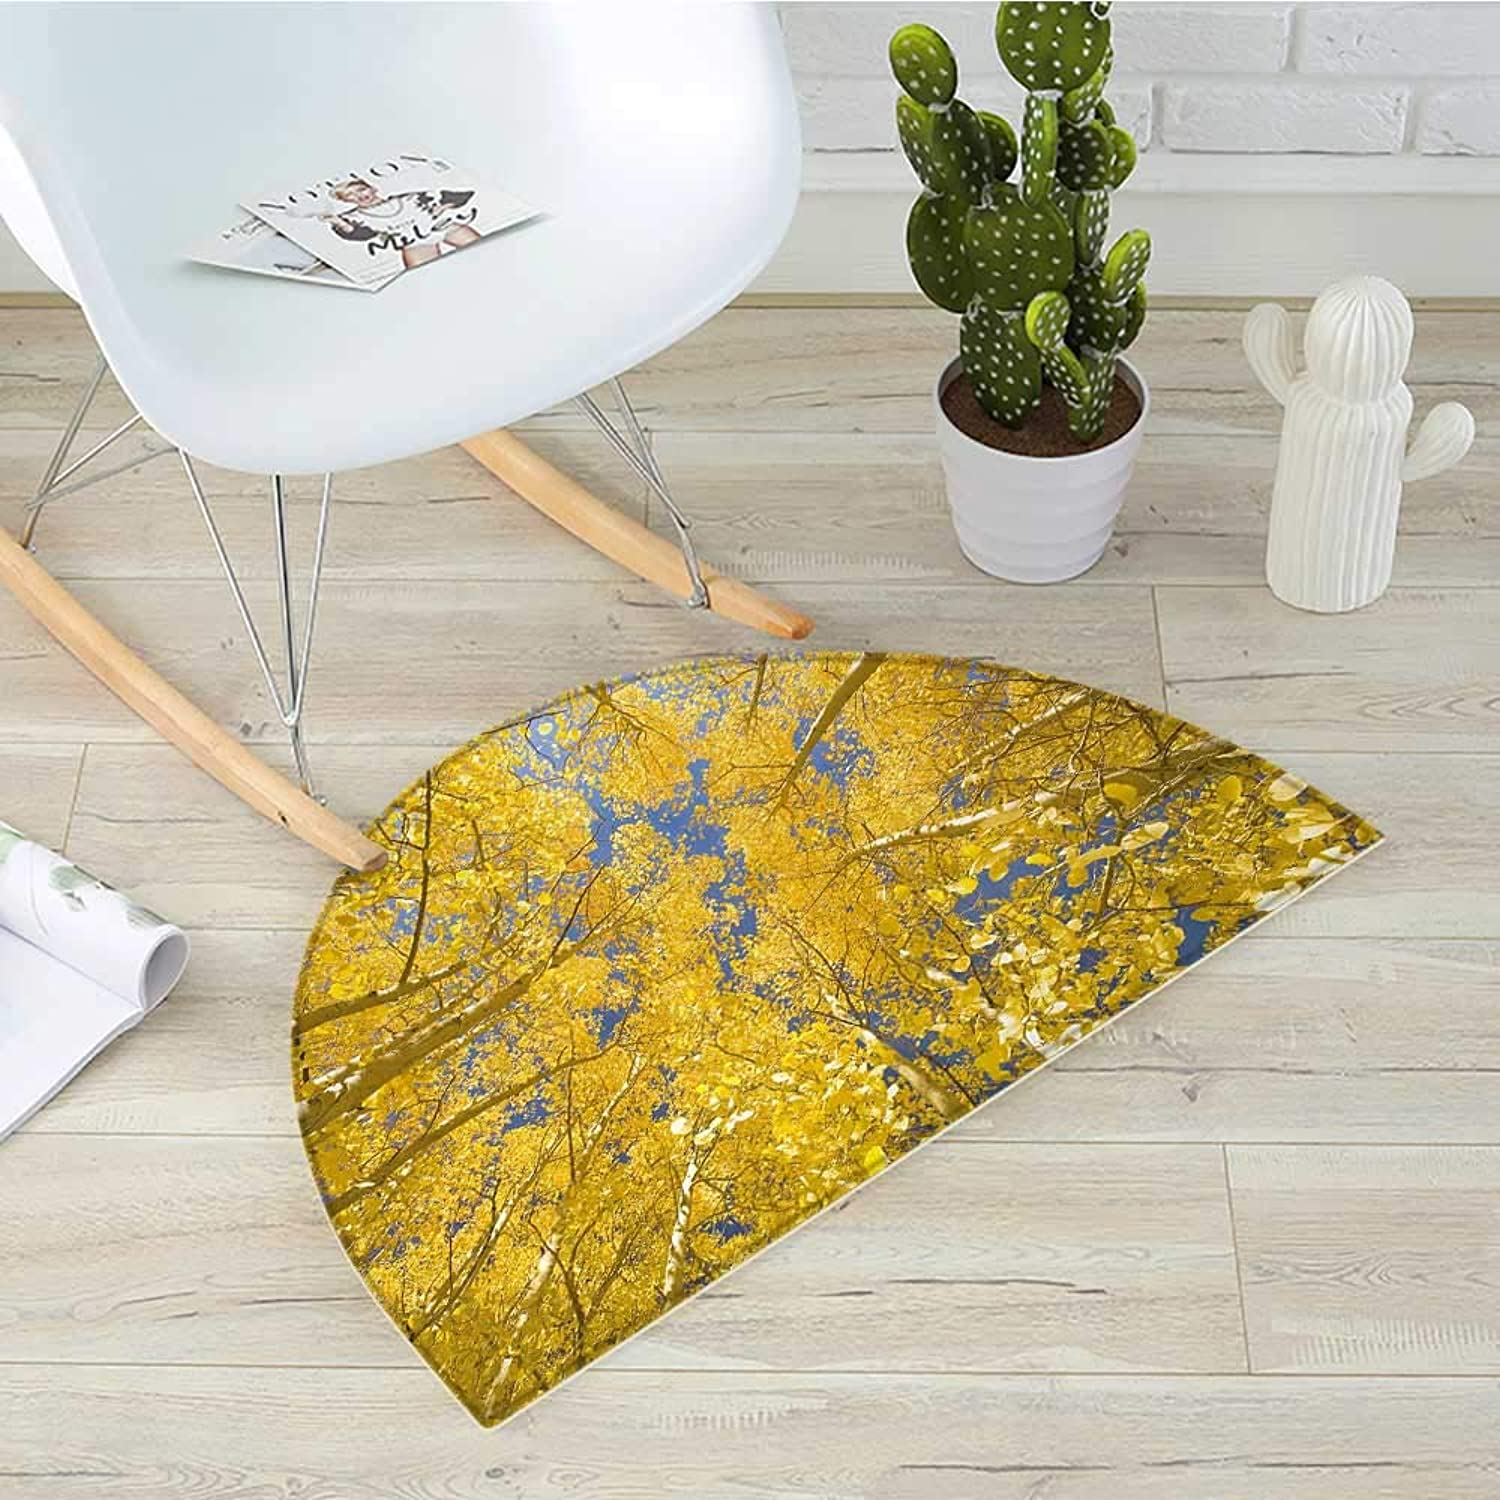 Yellow and bluee Semicircle Doormat Looking Skyward Amongst The Patch of Sun-lit Aspen Trees in Autumn Life Print Halfmoon doormats H 31.5  xD 47.2  Yellow